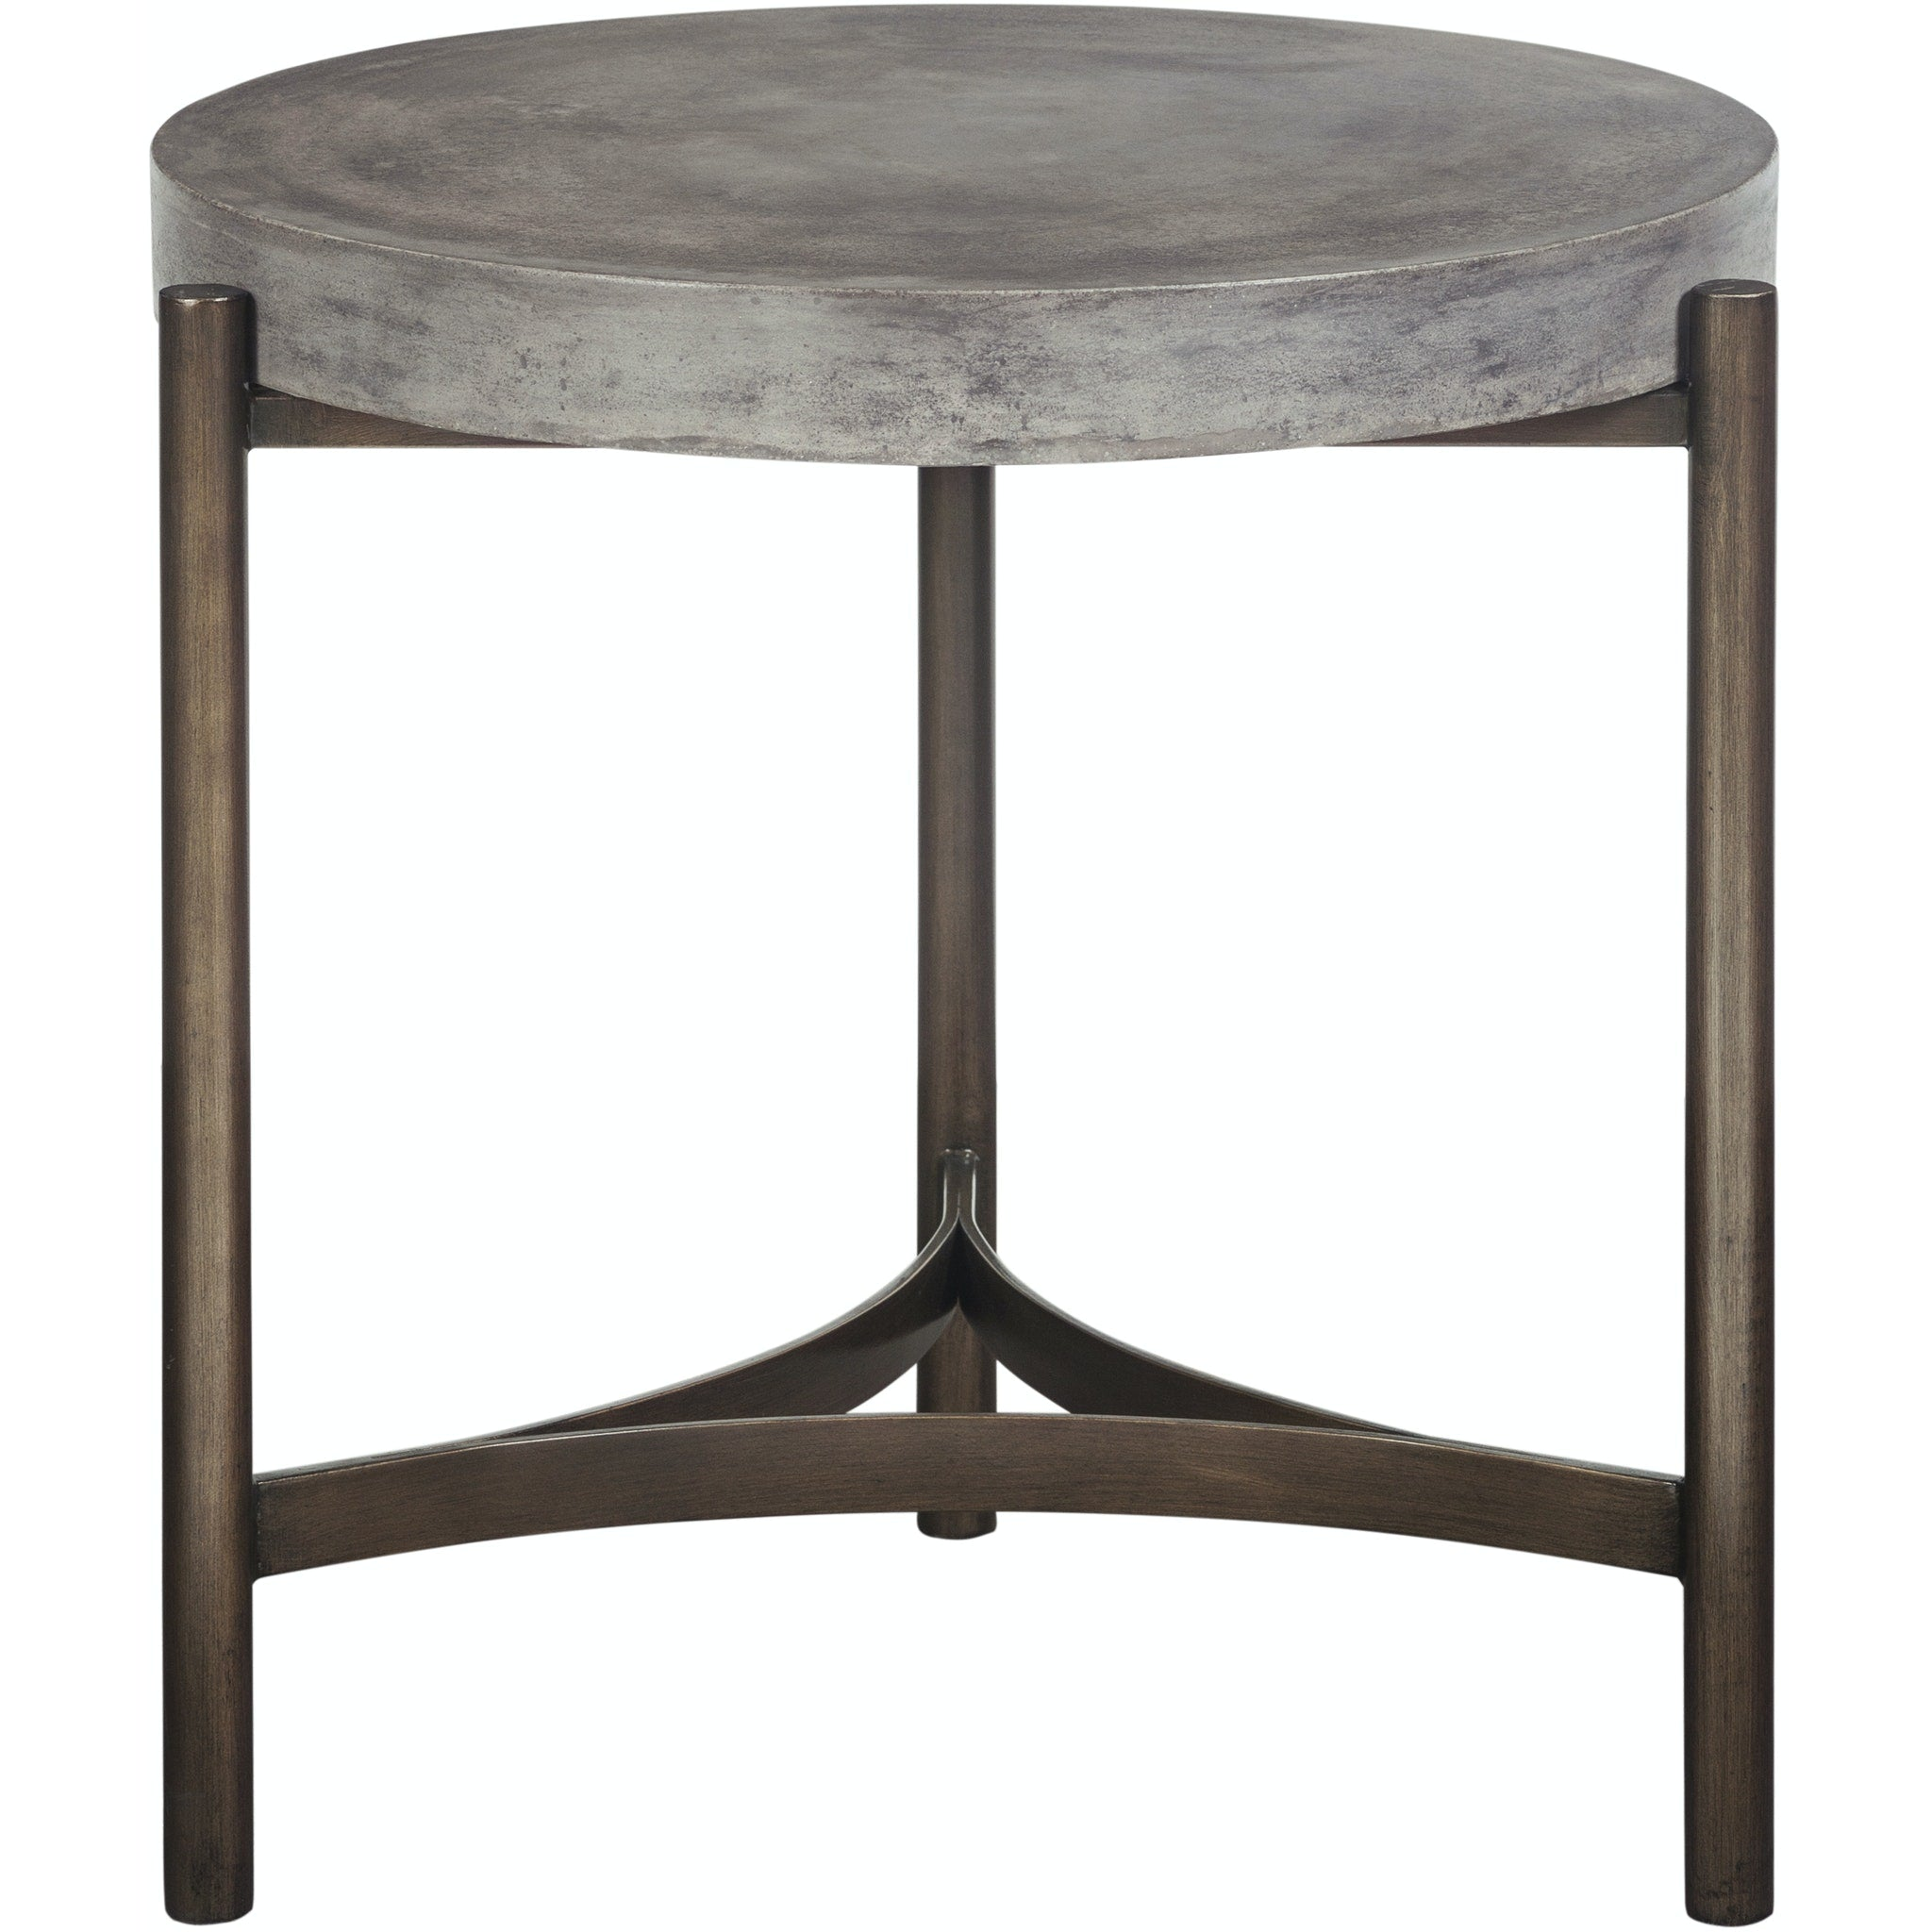 Lyon Round Concrete and Metal Side Table